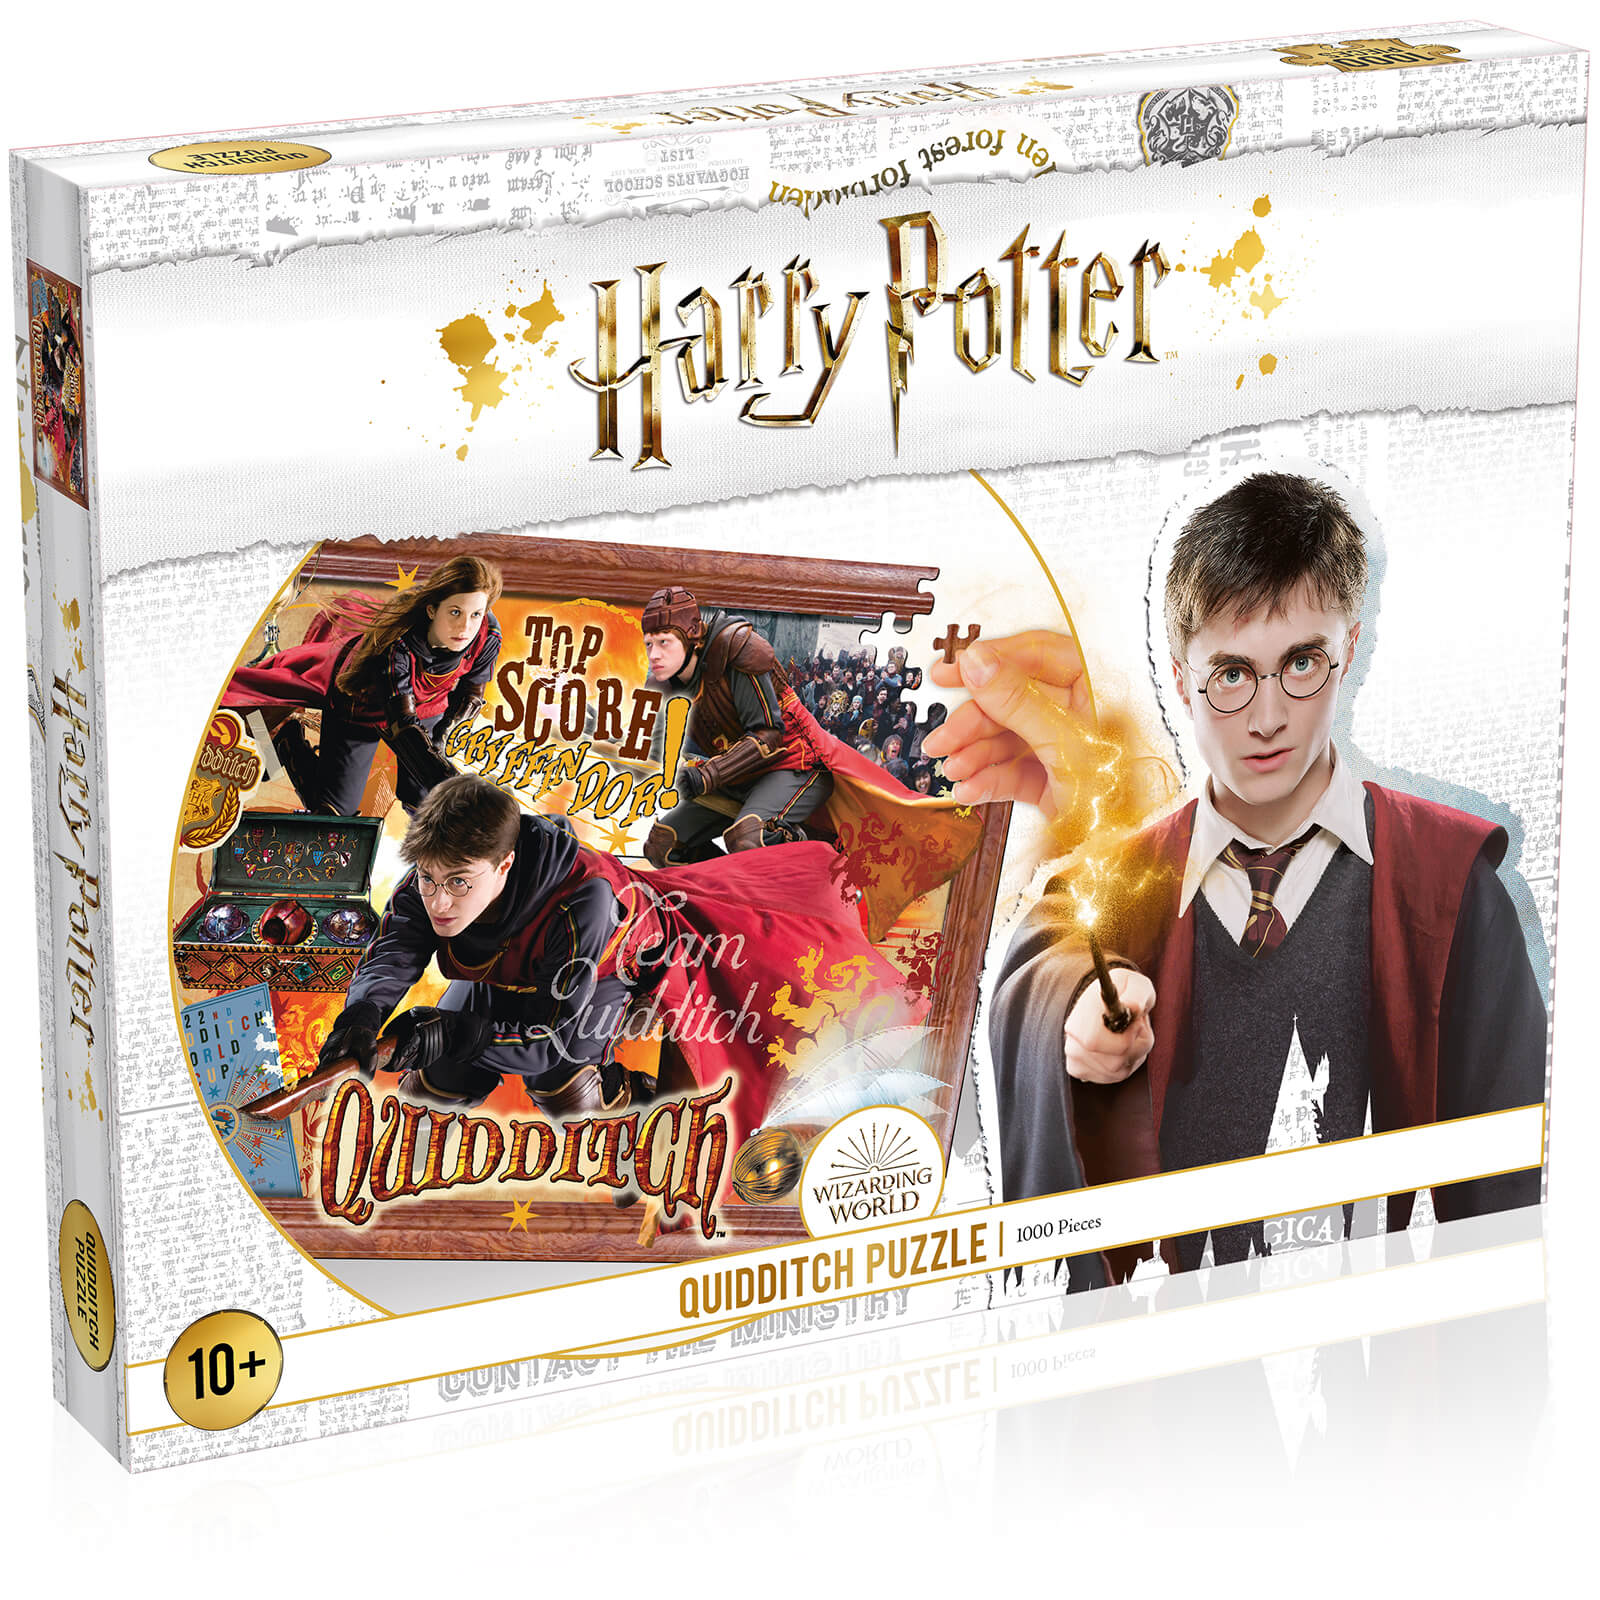 Image of 1000 Piece Jigsaw Puzzle - Harry Potter Quidditch Edition